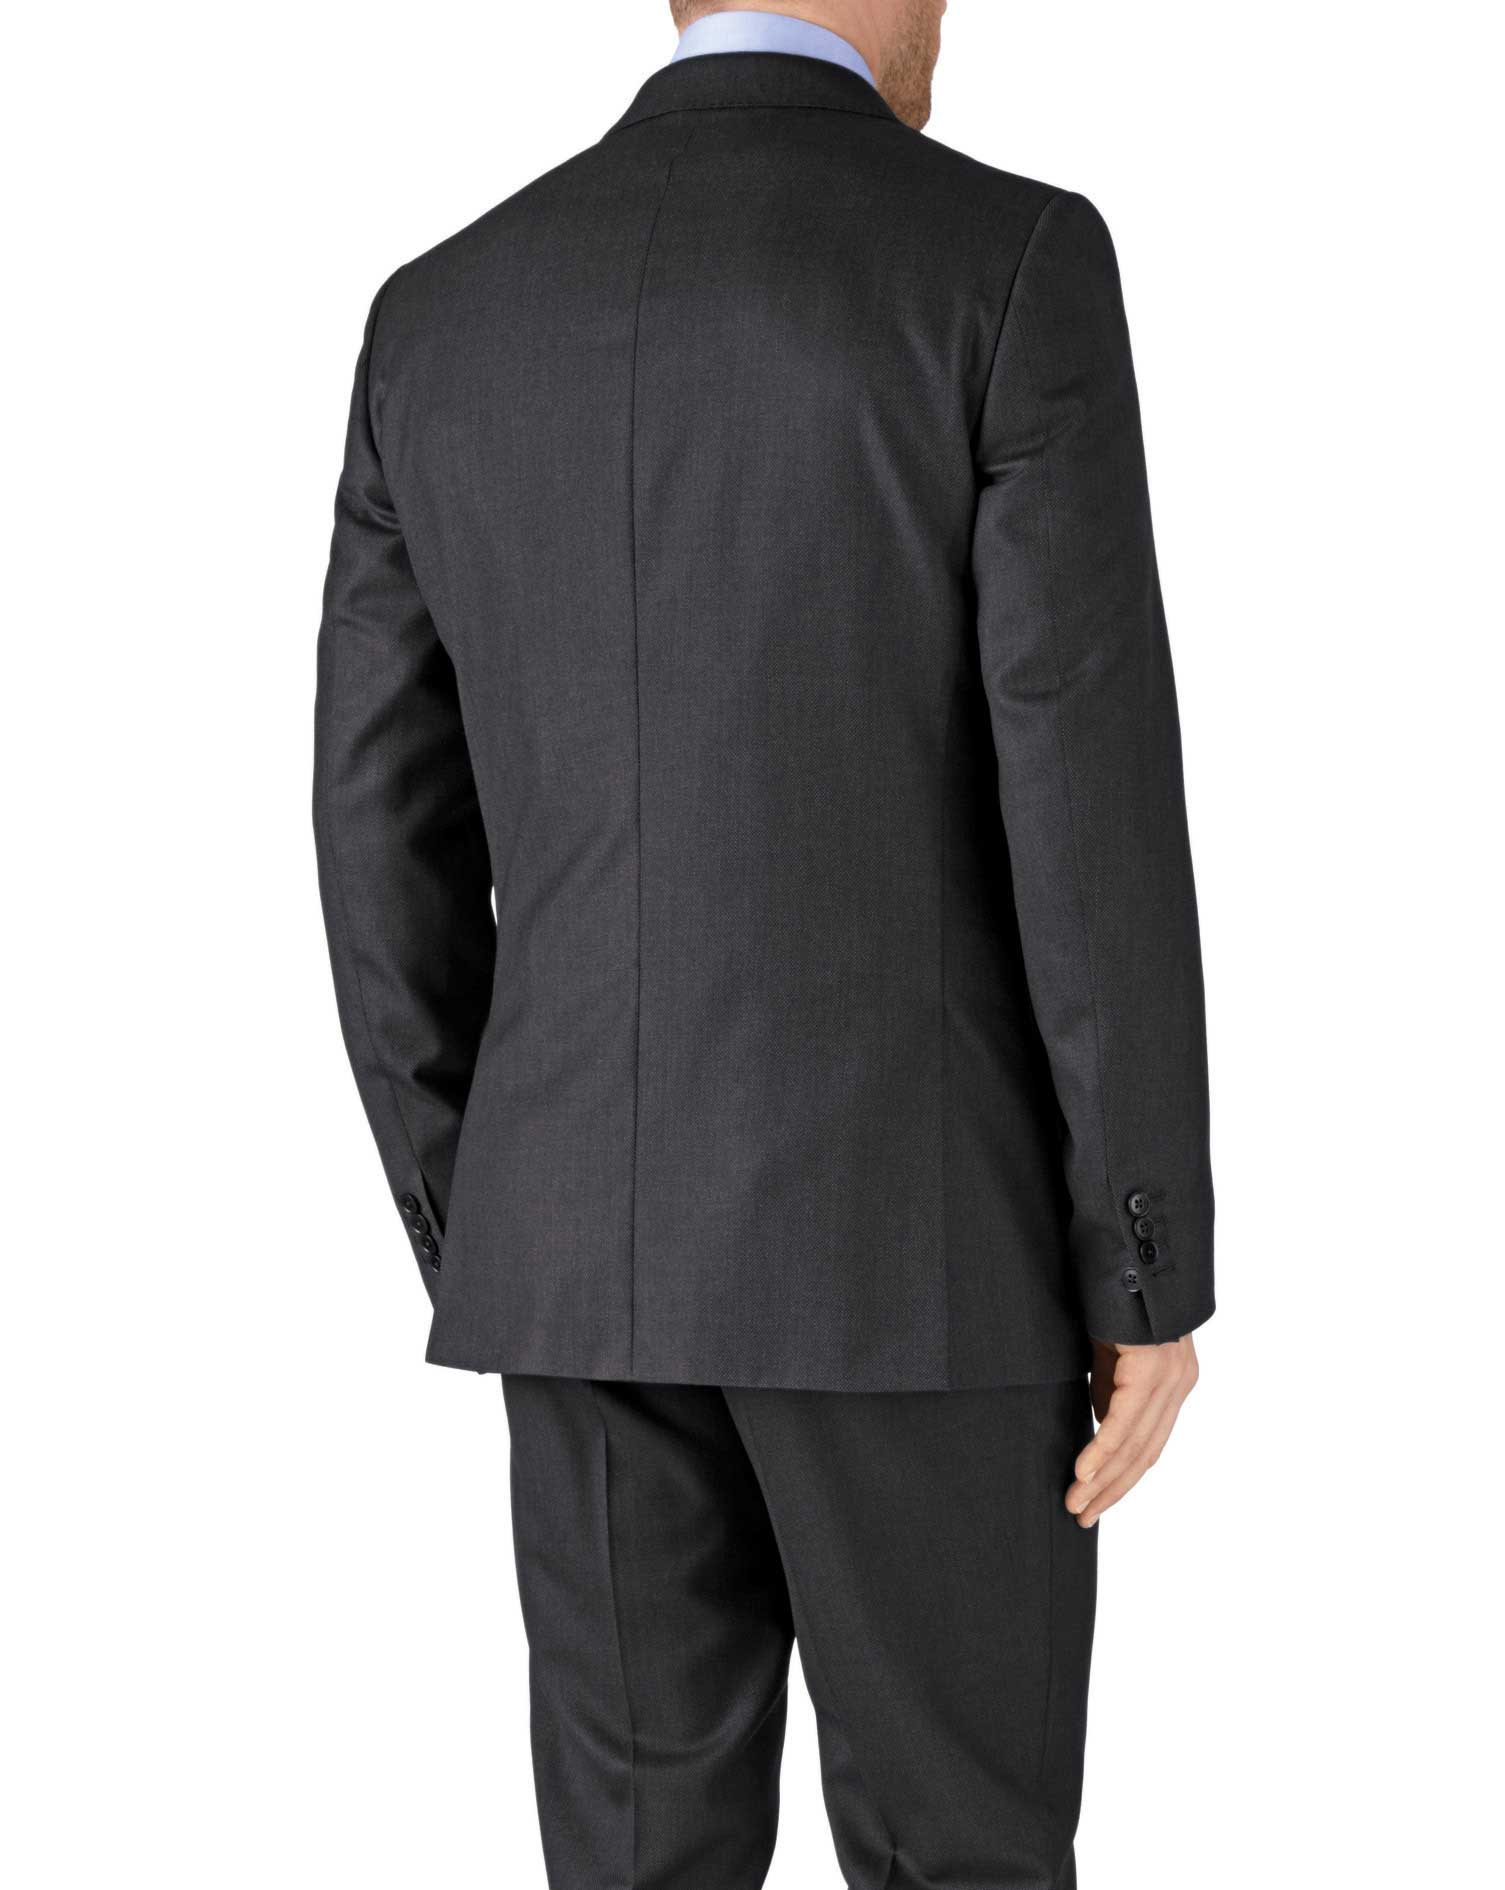 Charcoal slim fit birdseye travel suit jacket